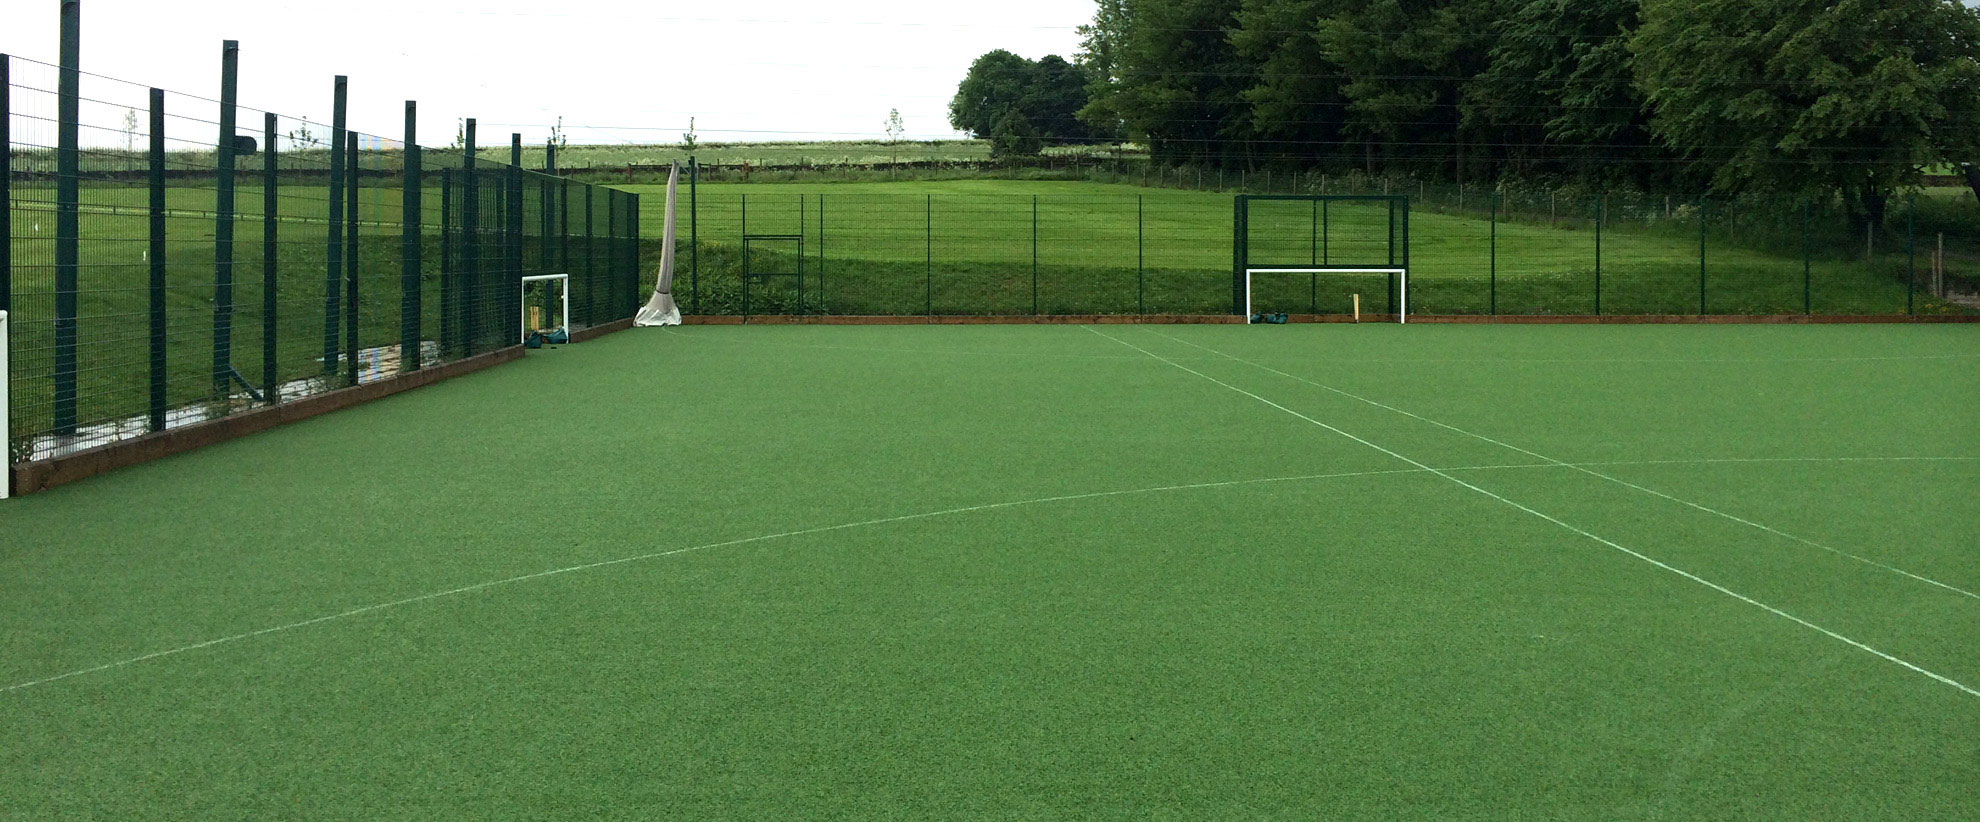 Multi-use games area pitch, with goal posts and exterior fencing.